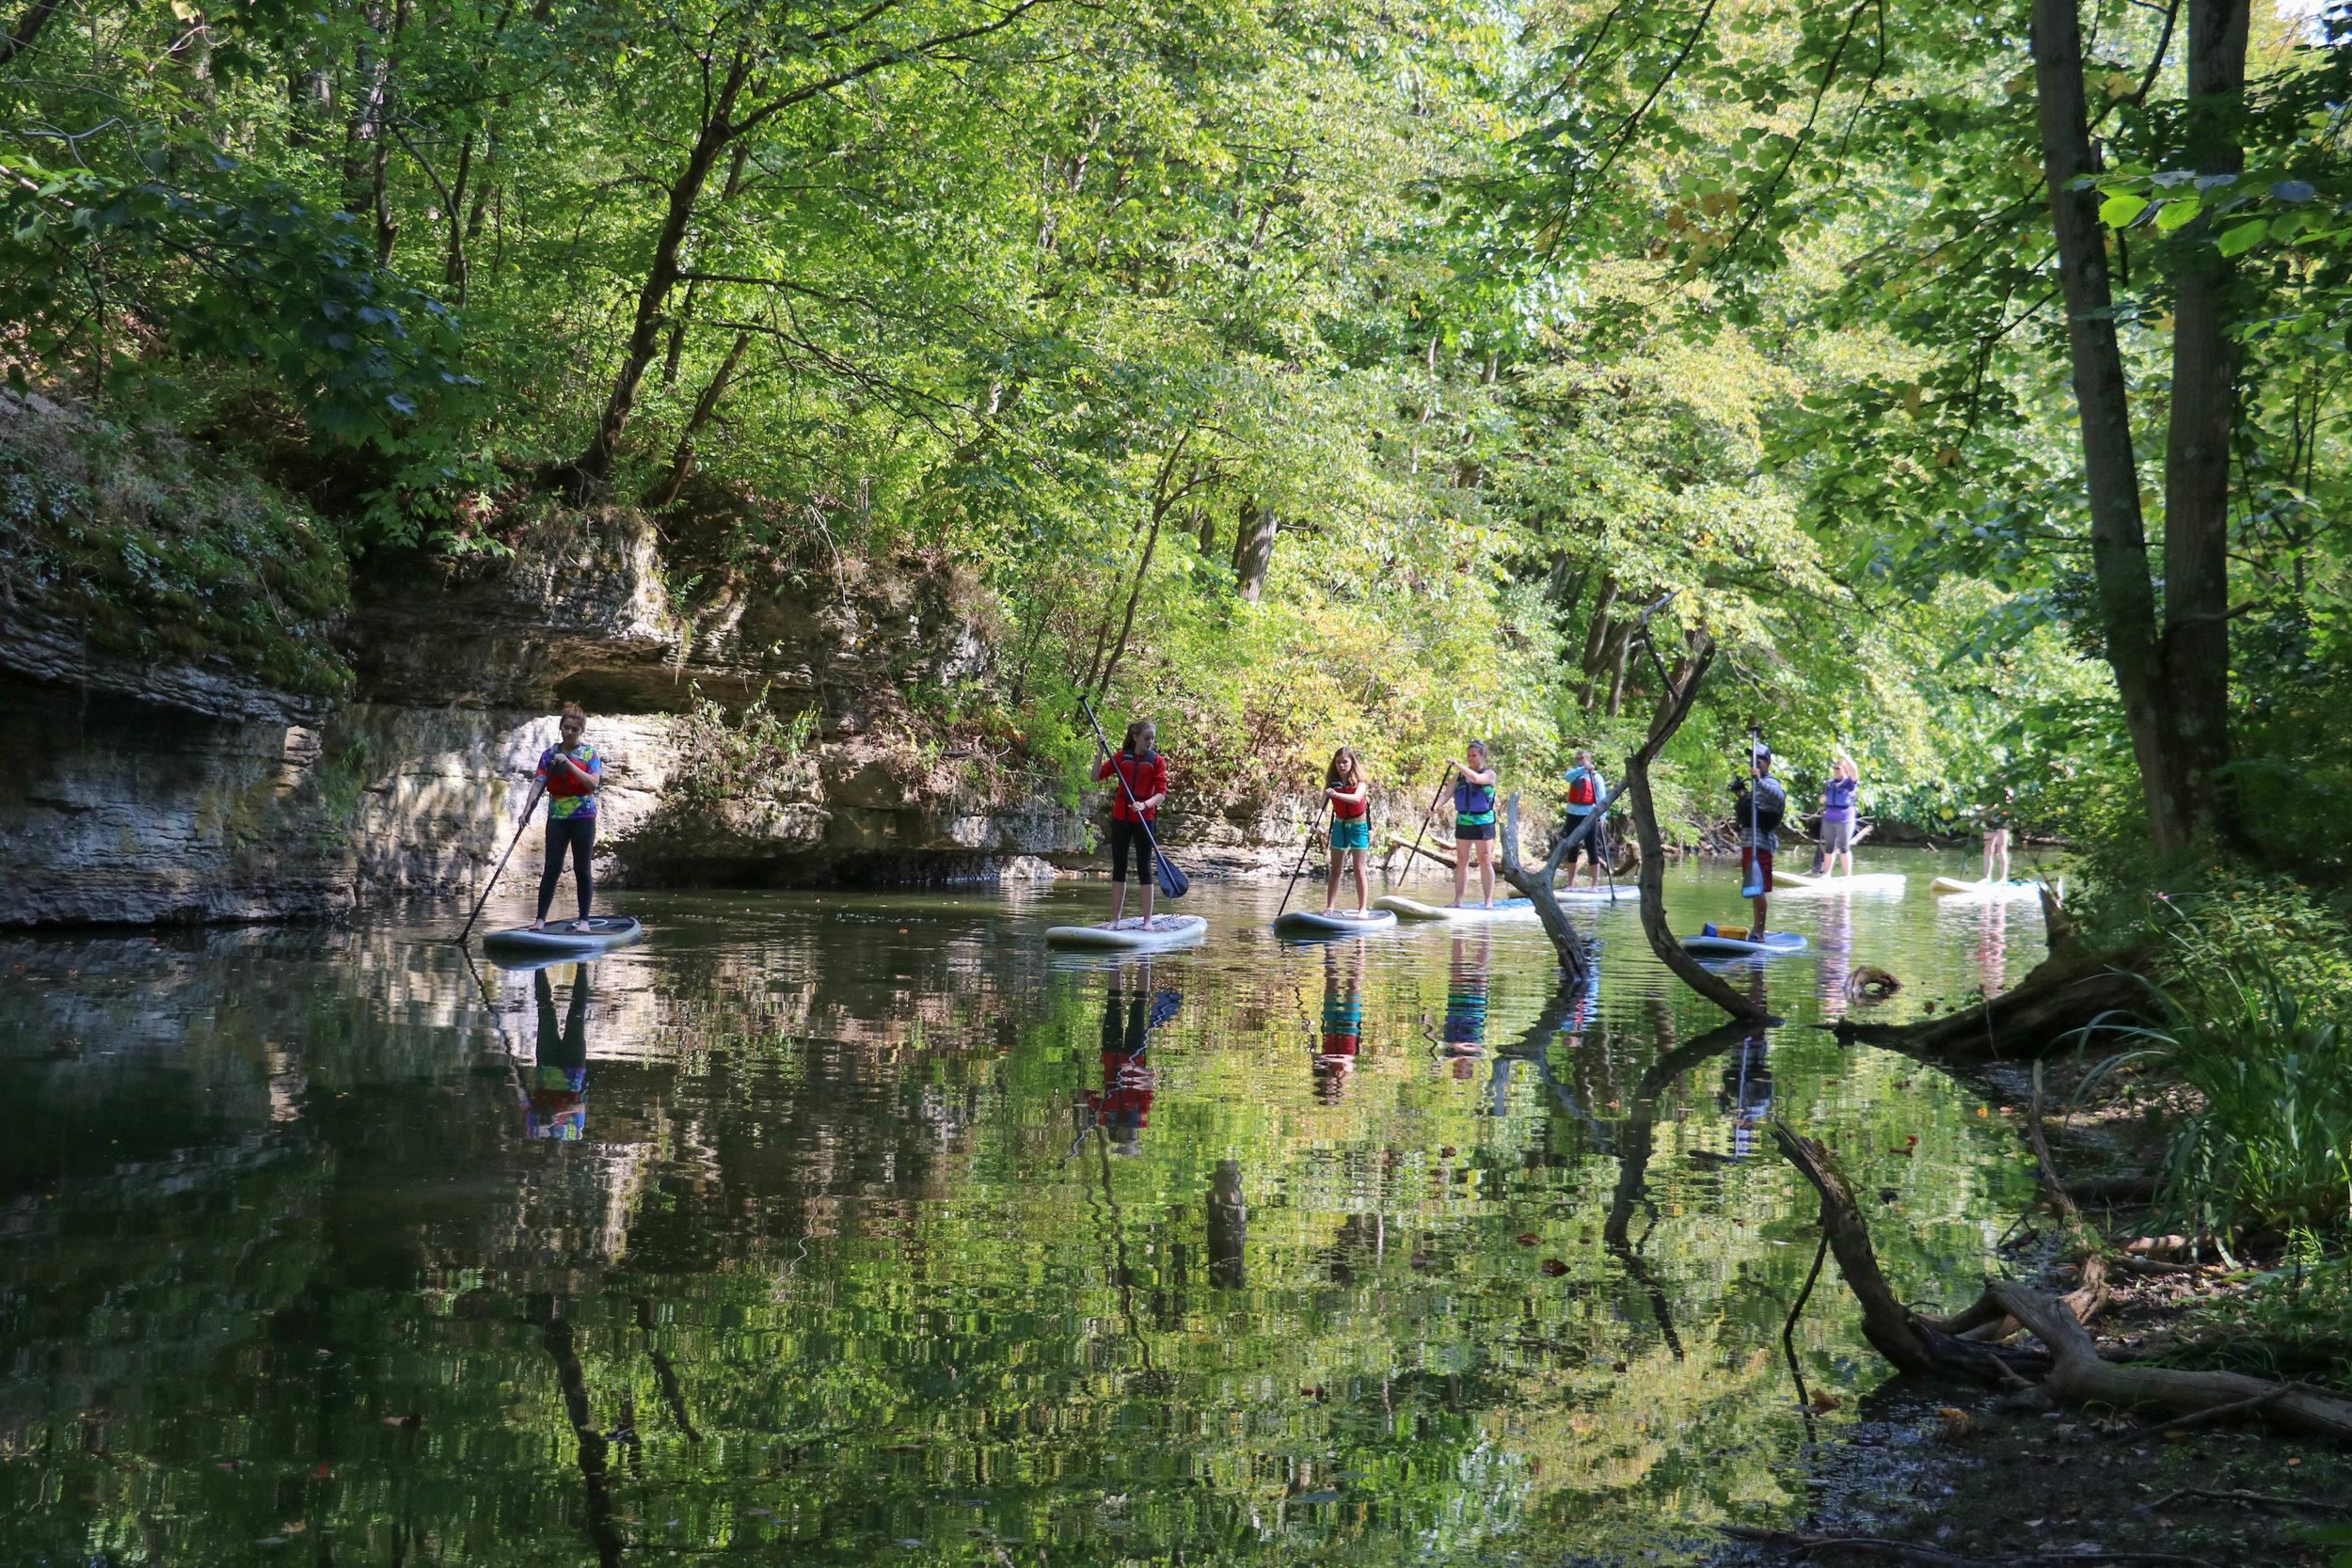 Moraine / Oakmont Eco-Tours - Our most popular offering our these Eco-Tours at Moraine State Park and the Islands of Oakmont! Perfect for first-time paddlers.